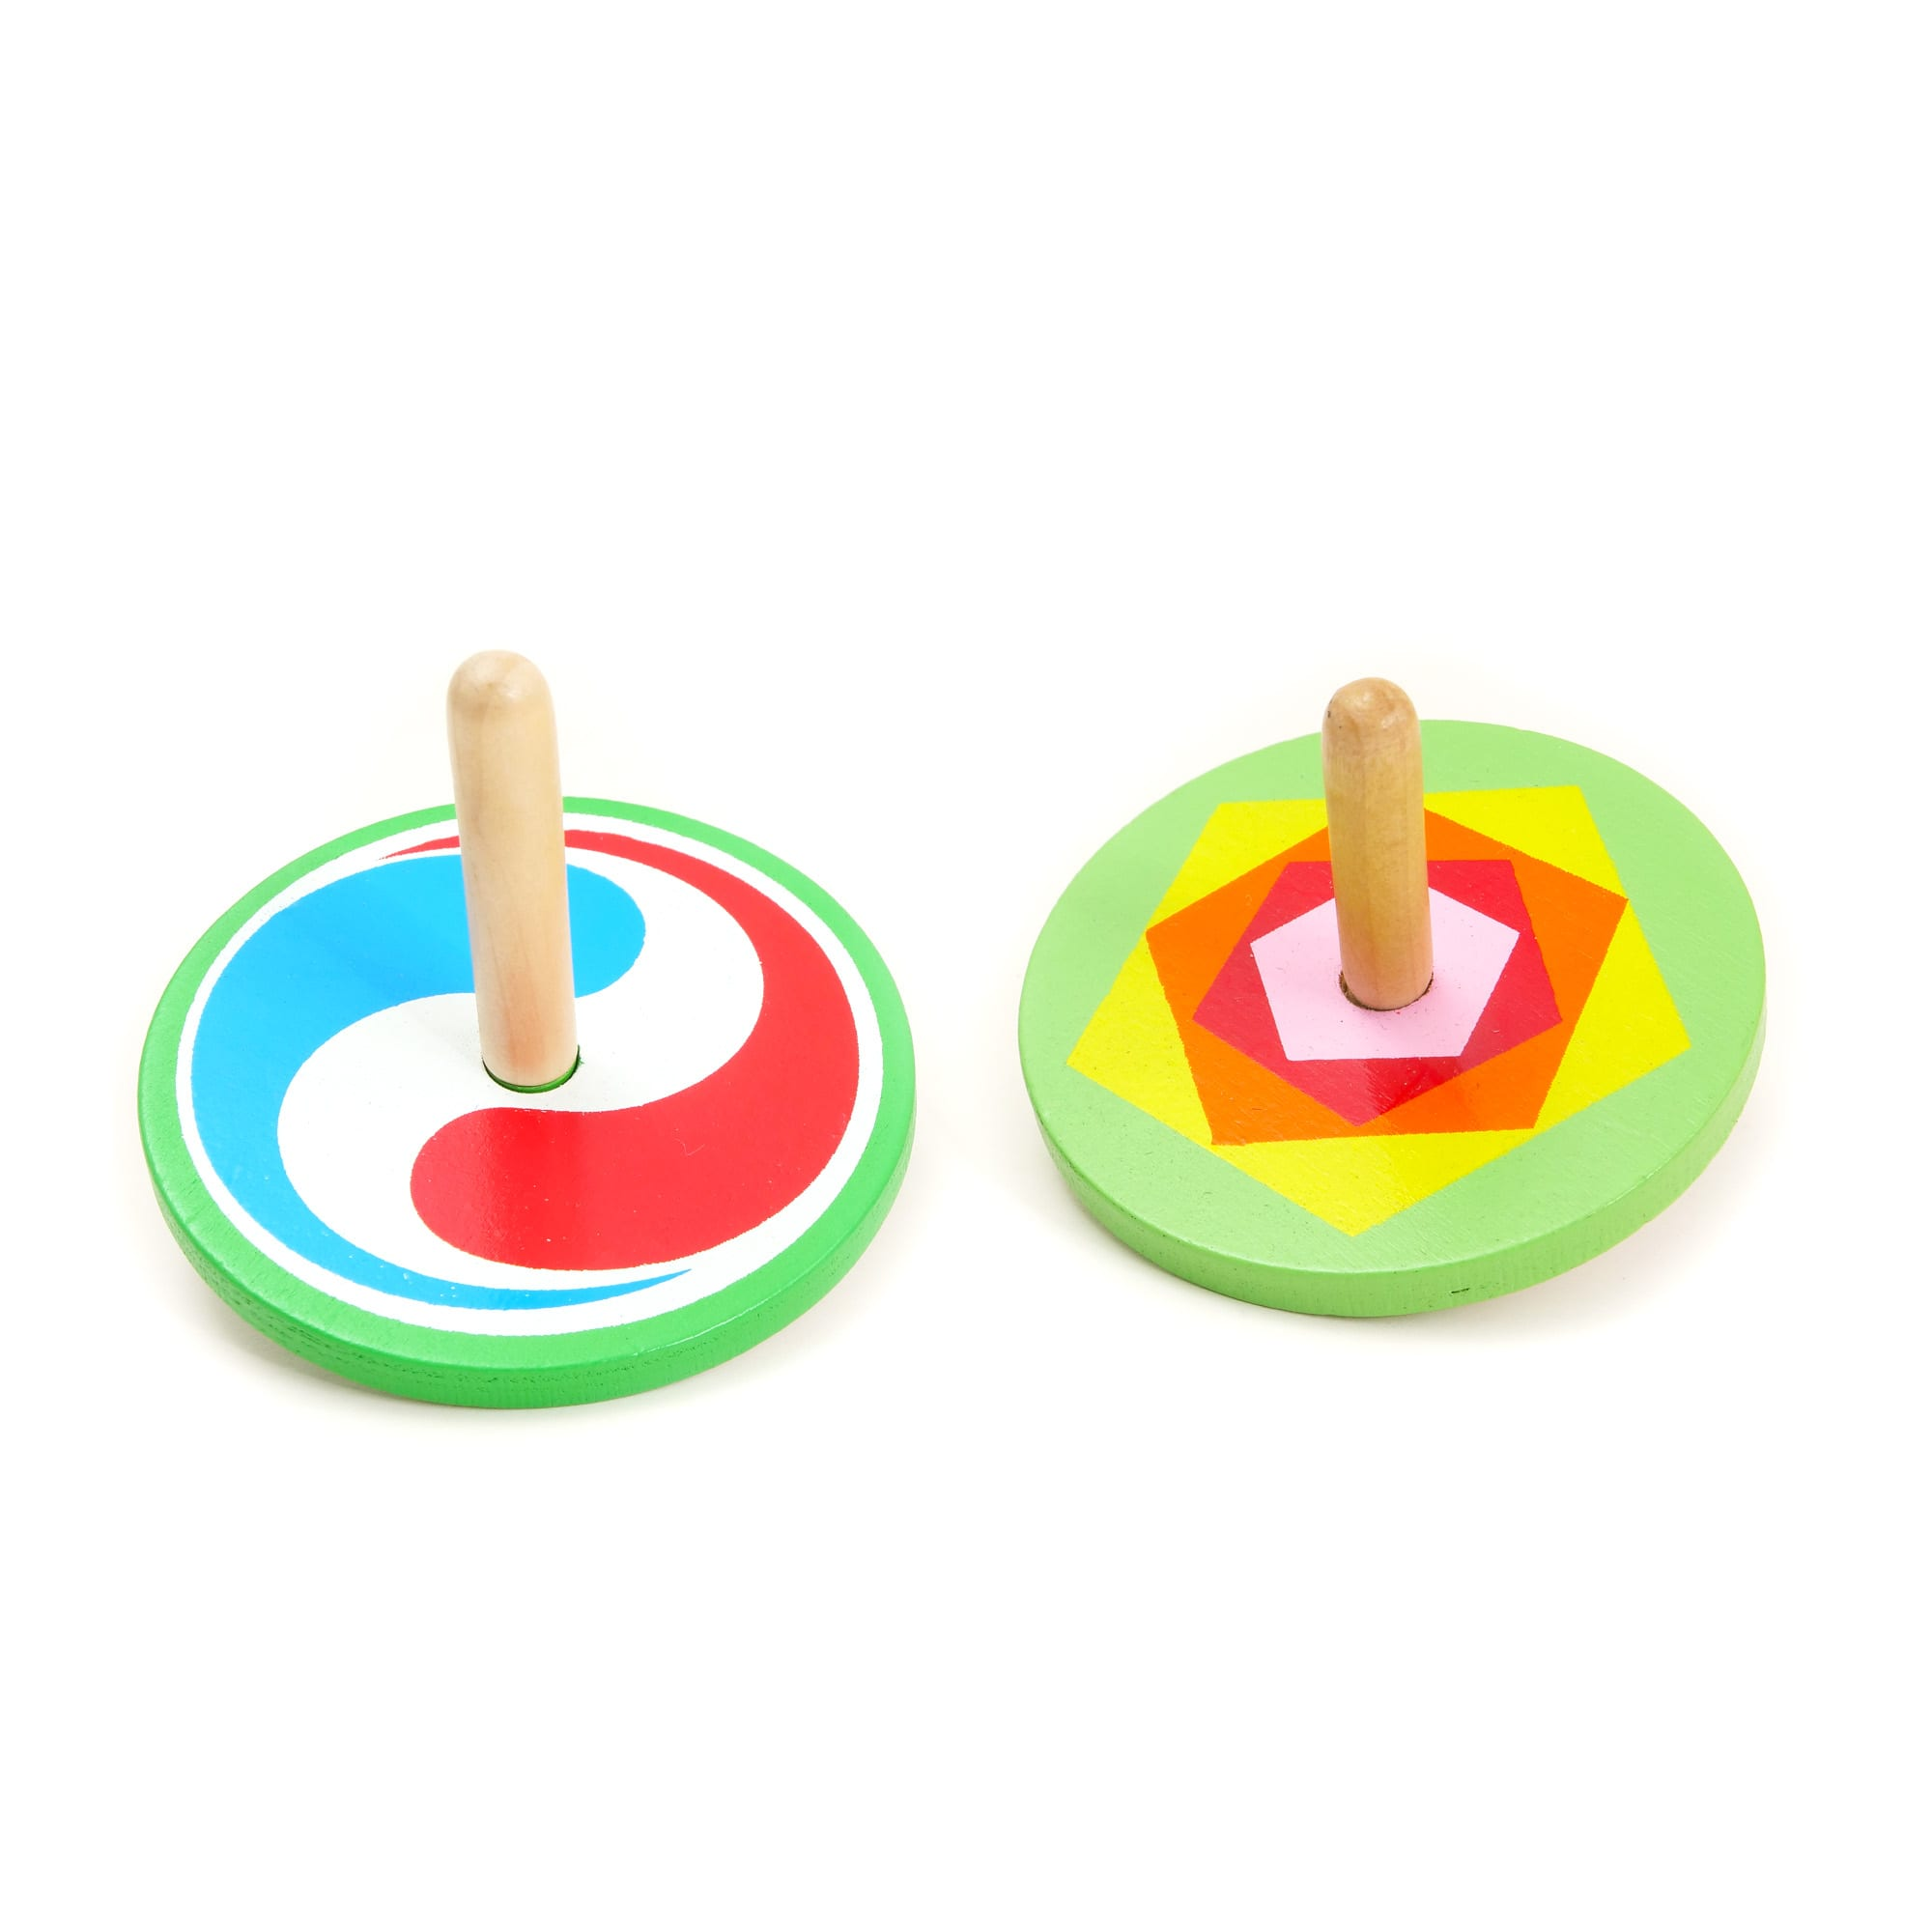 Mini Wooden Spinning Top | House of Marbles